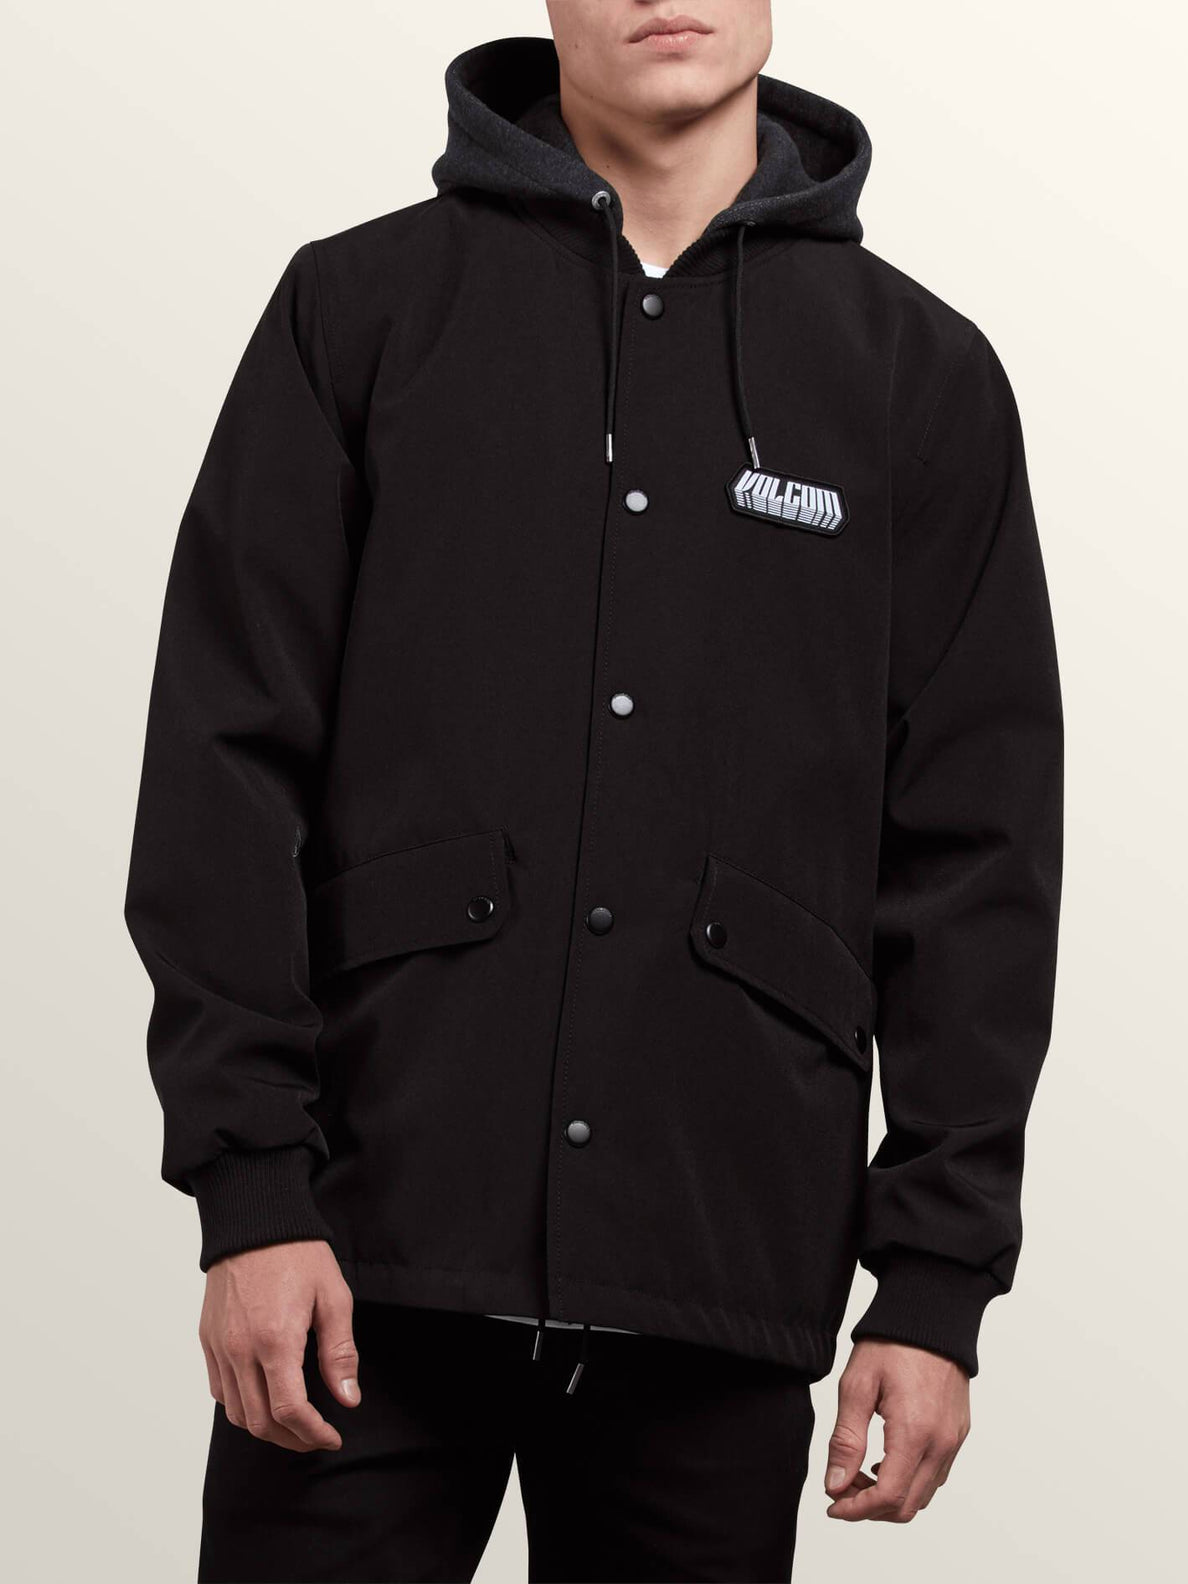 Highstone Jacket In Black, Front View